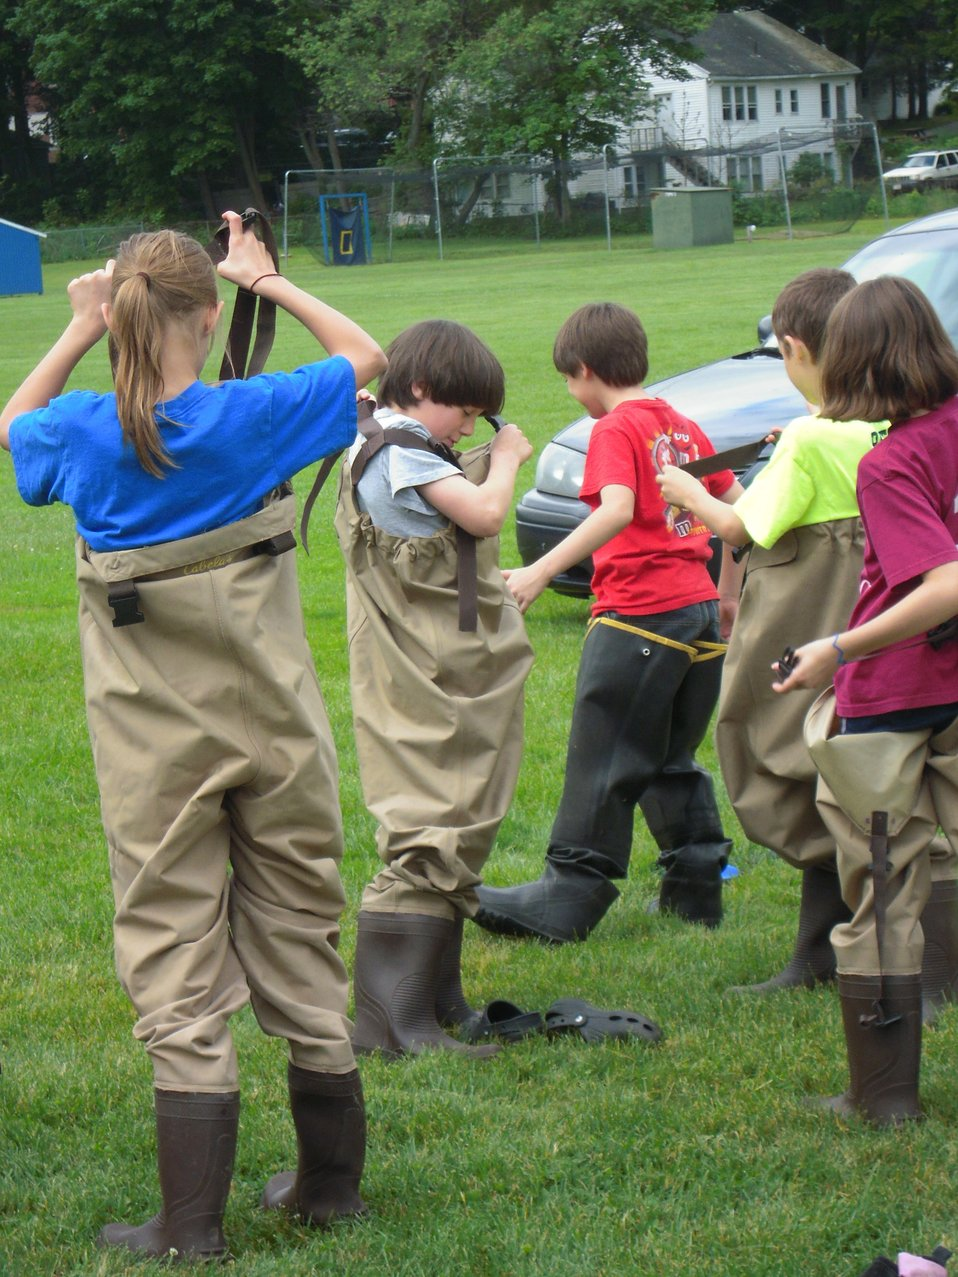 Kids in waders